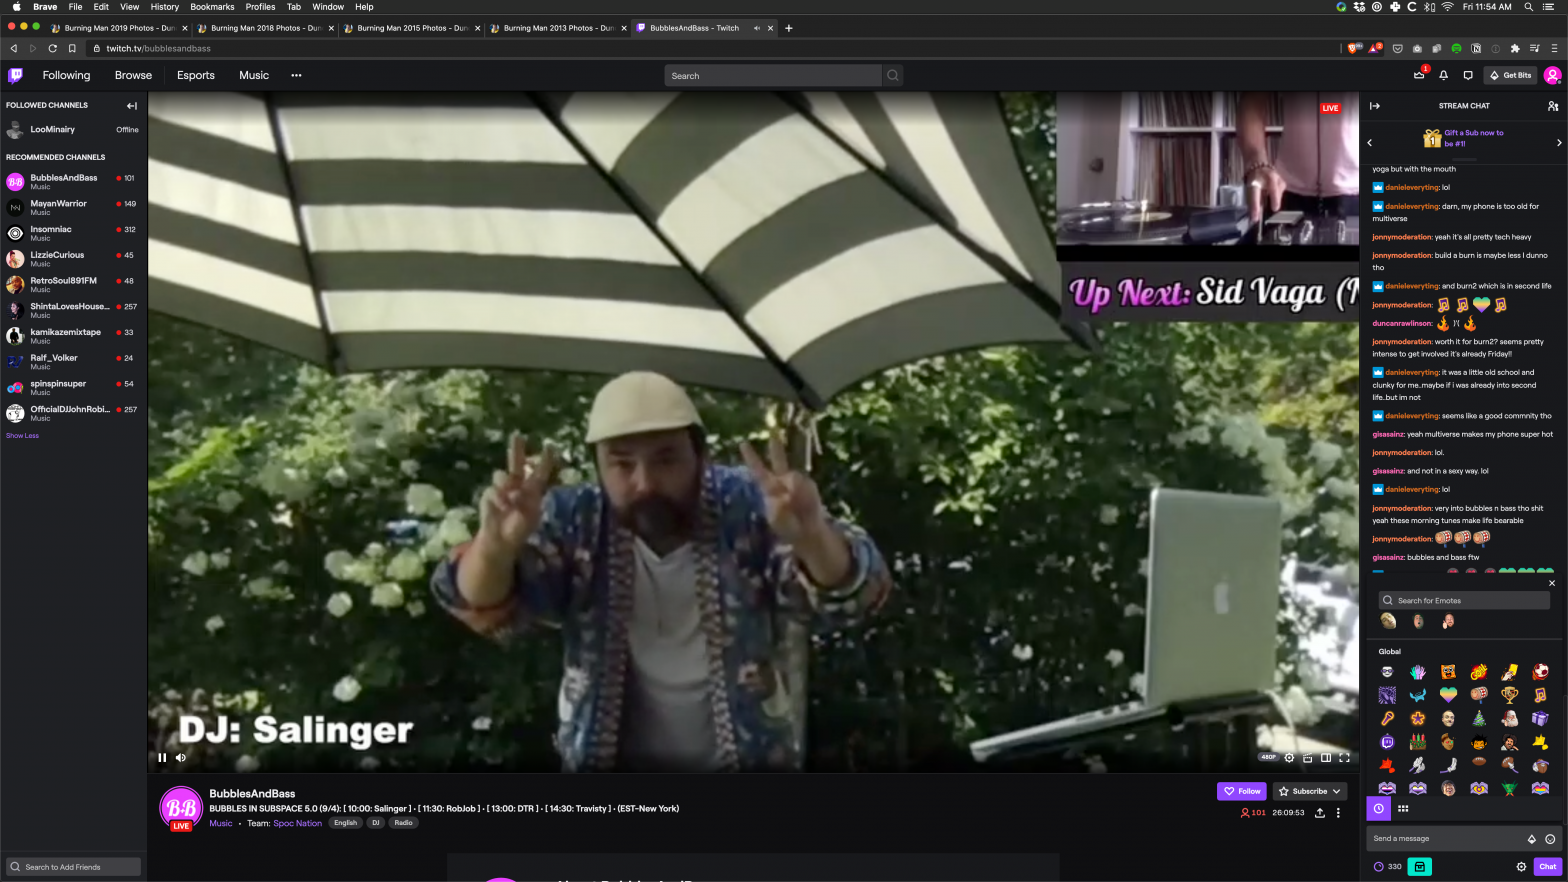 Salinger Bubbles and Bass Livestream